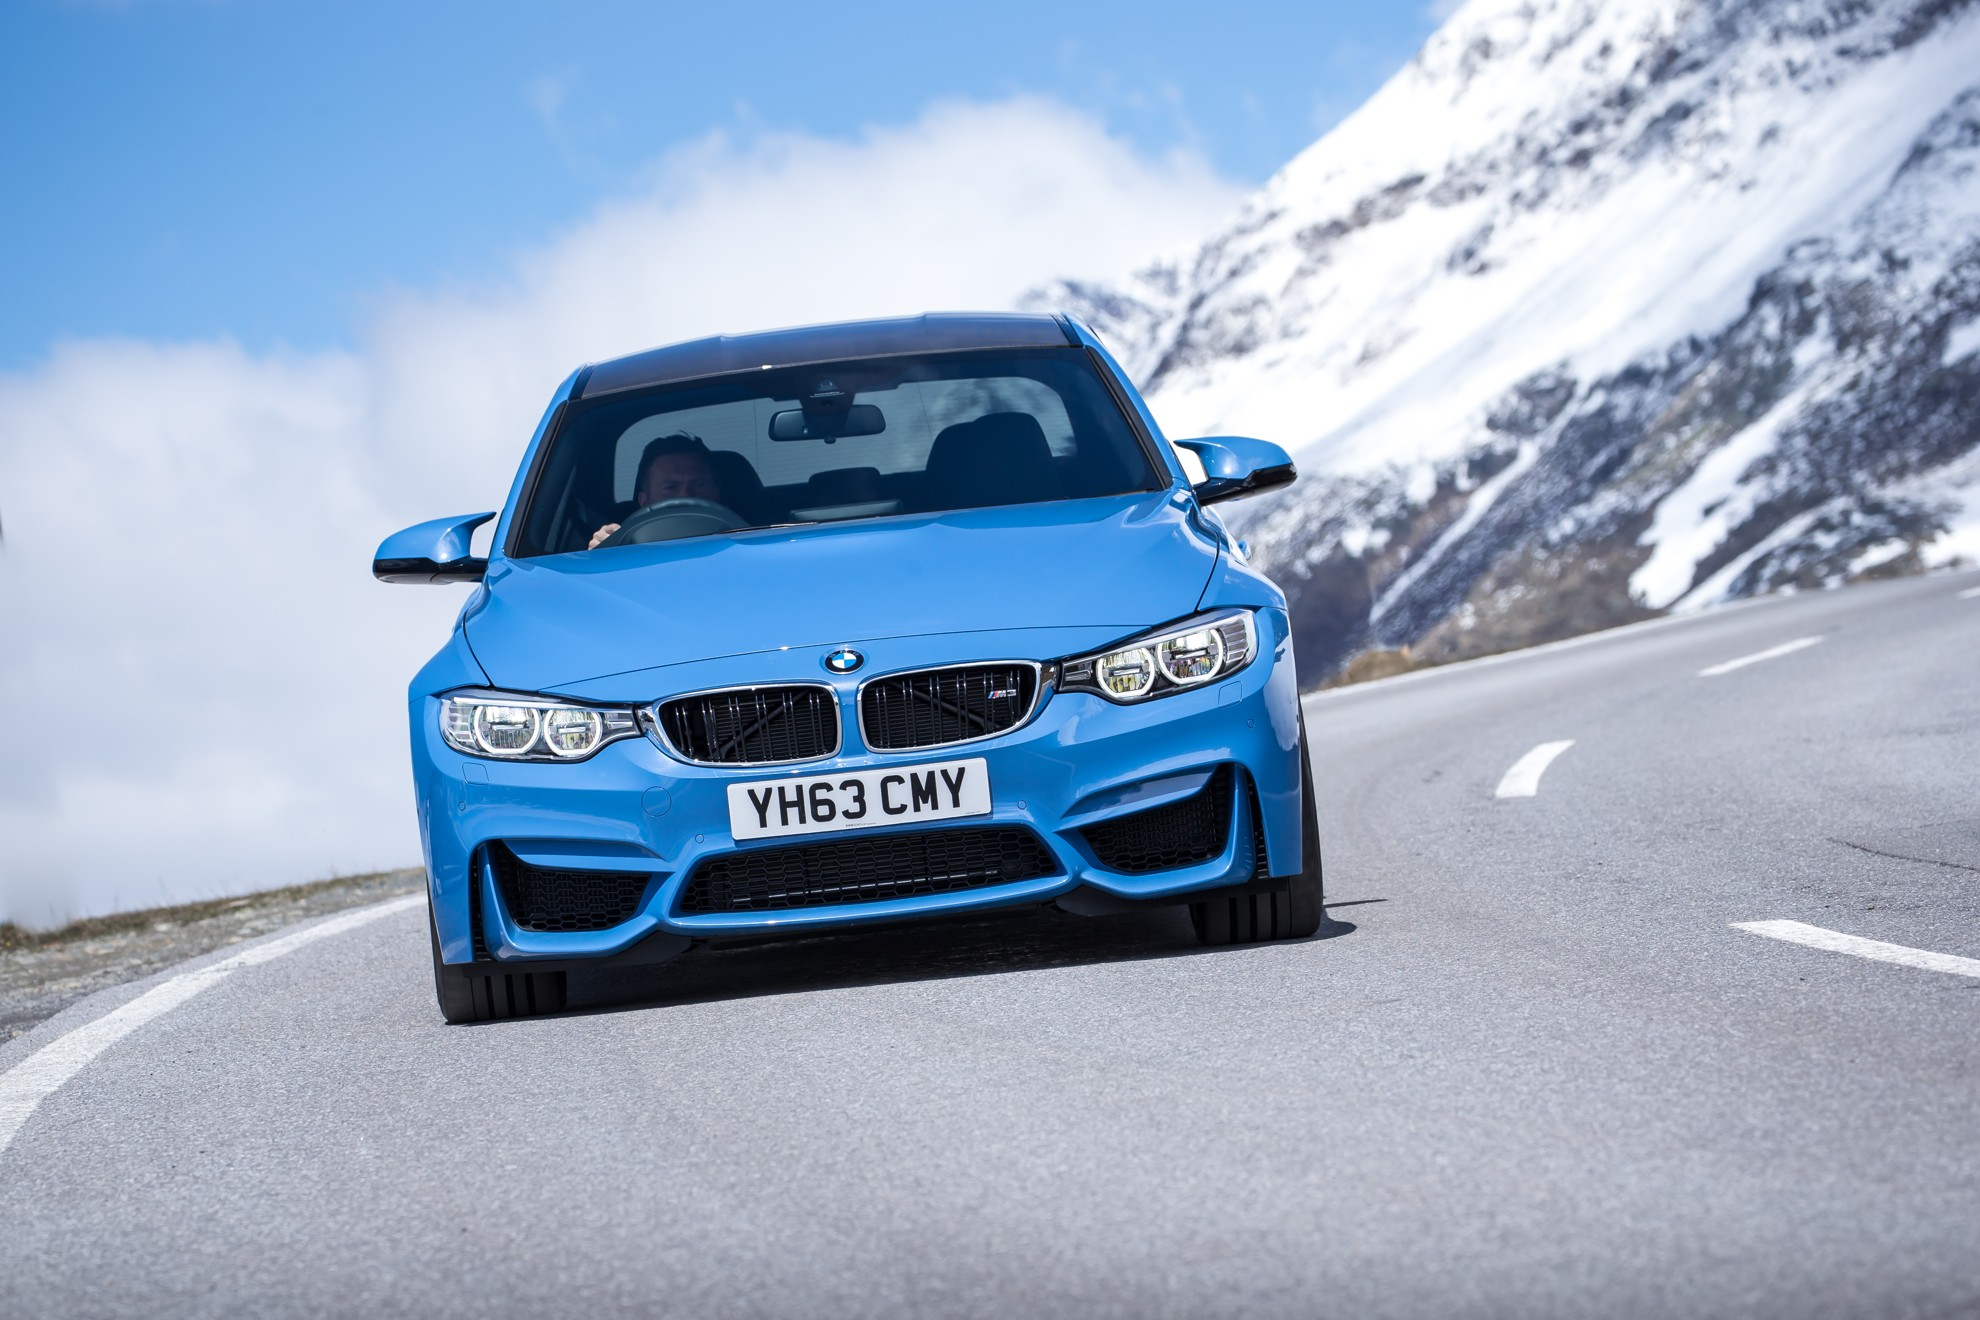 BMW M3 Saloon and BMW M4 Coupé